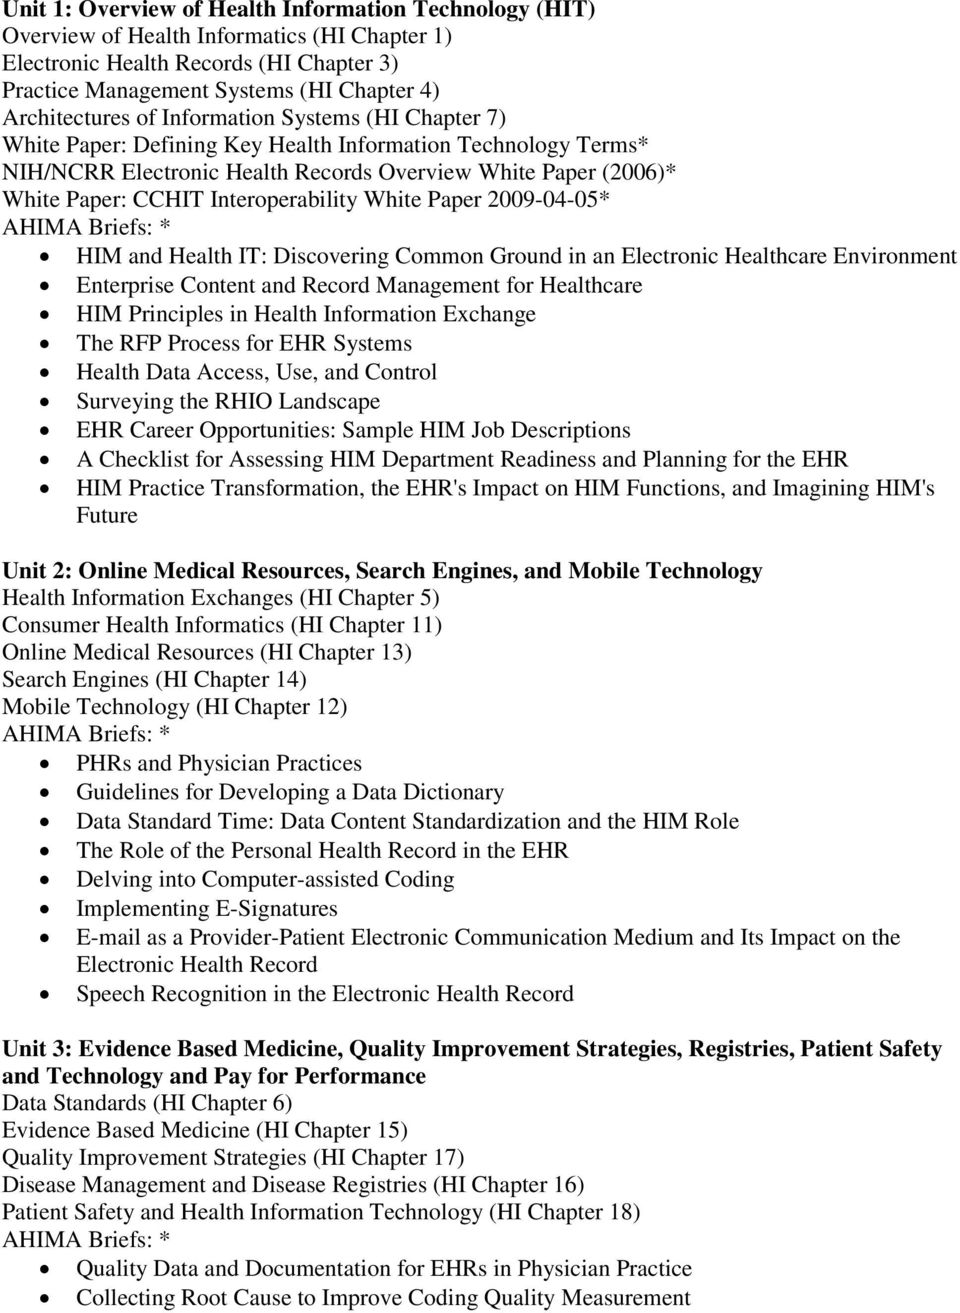 Interoperability White Paper 2009-04-05* HIM and Health IT: Discovering Common Ground in an Electronic Healthcare Environment Enterprise Content and Record Management for Healthcare HIM Principles in